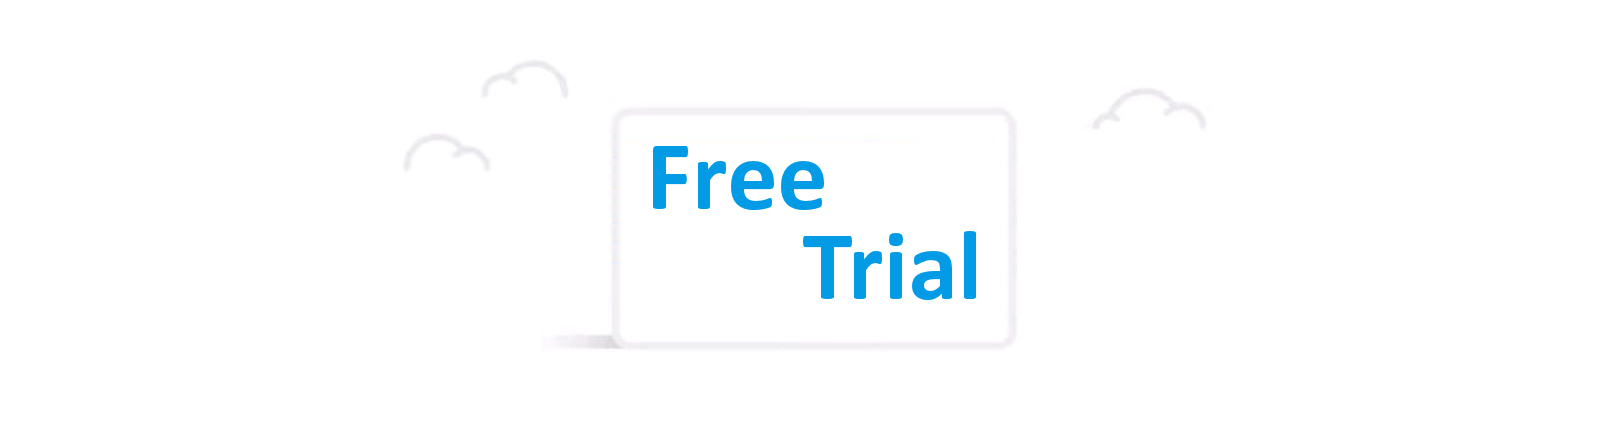 Appinvoice free trial